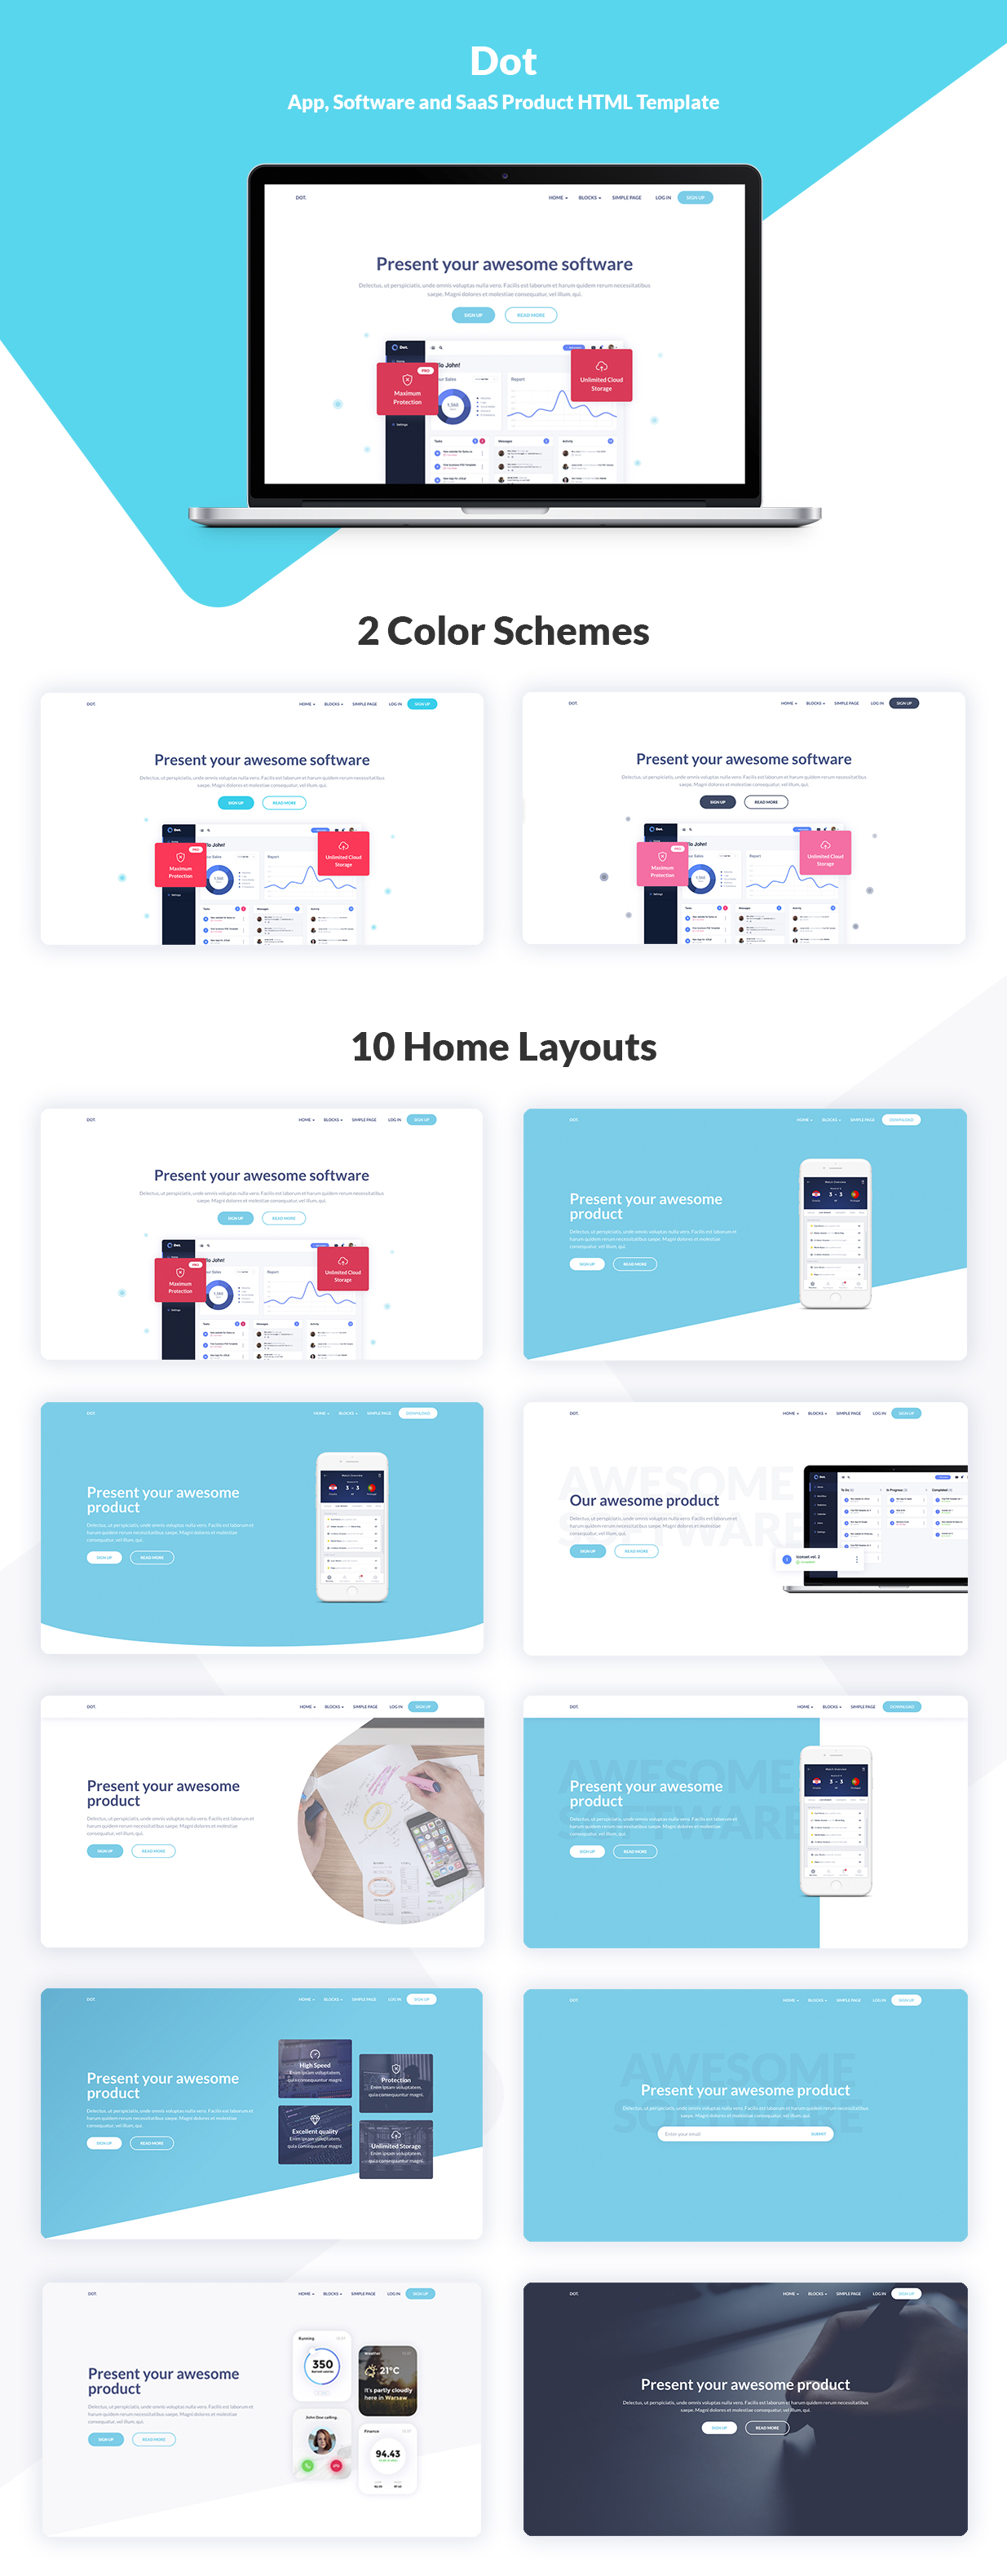 Dot App Software And Saas Product Html Template By Harbourthemes